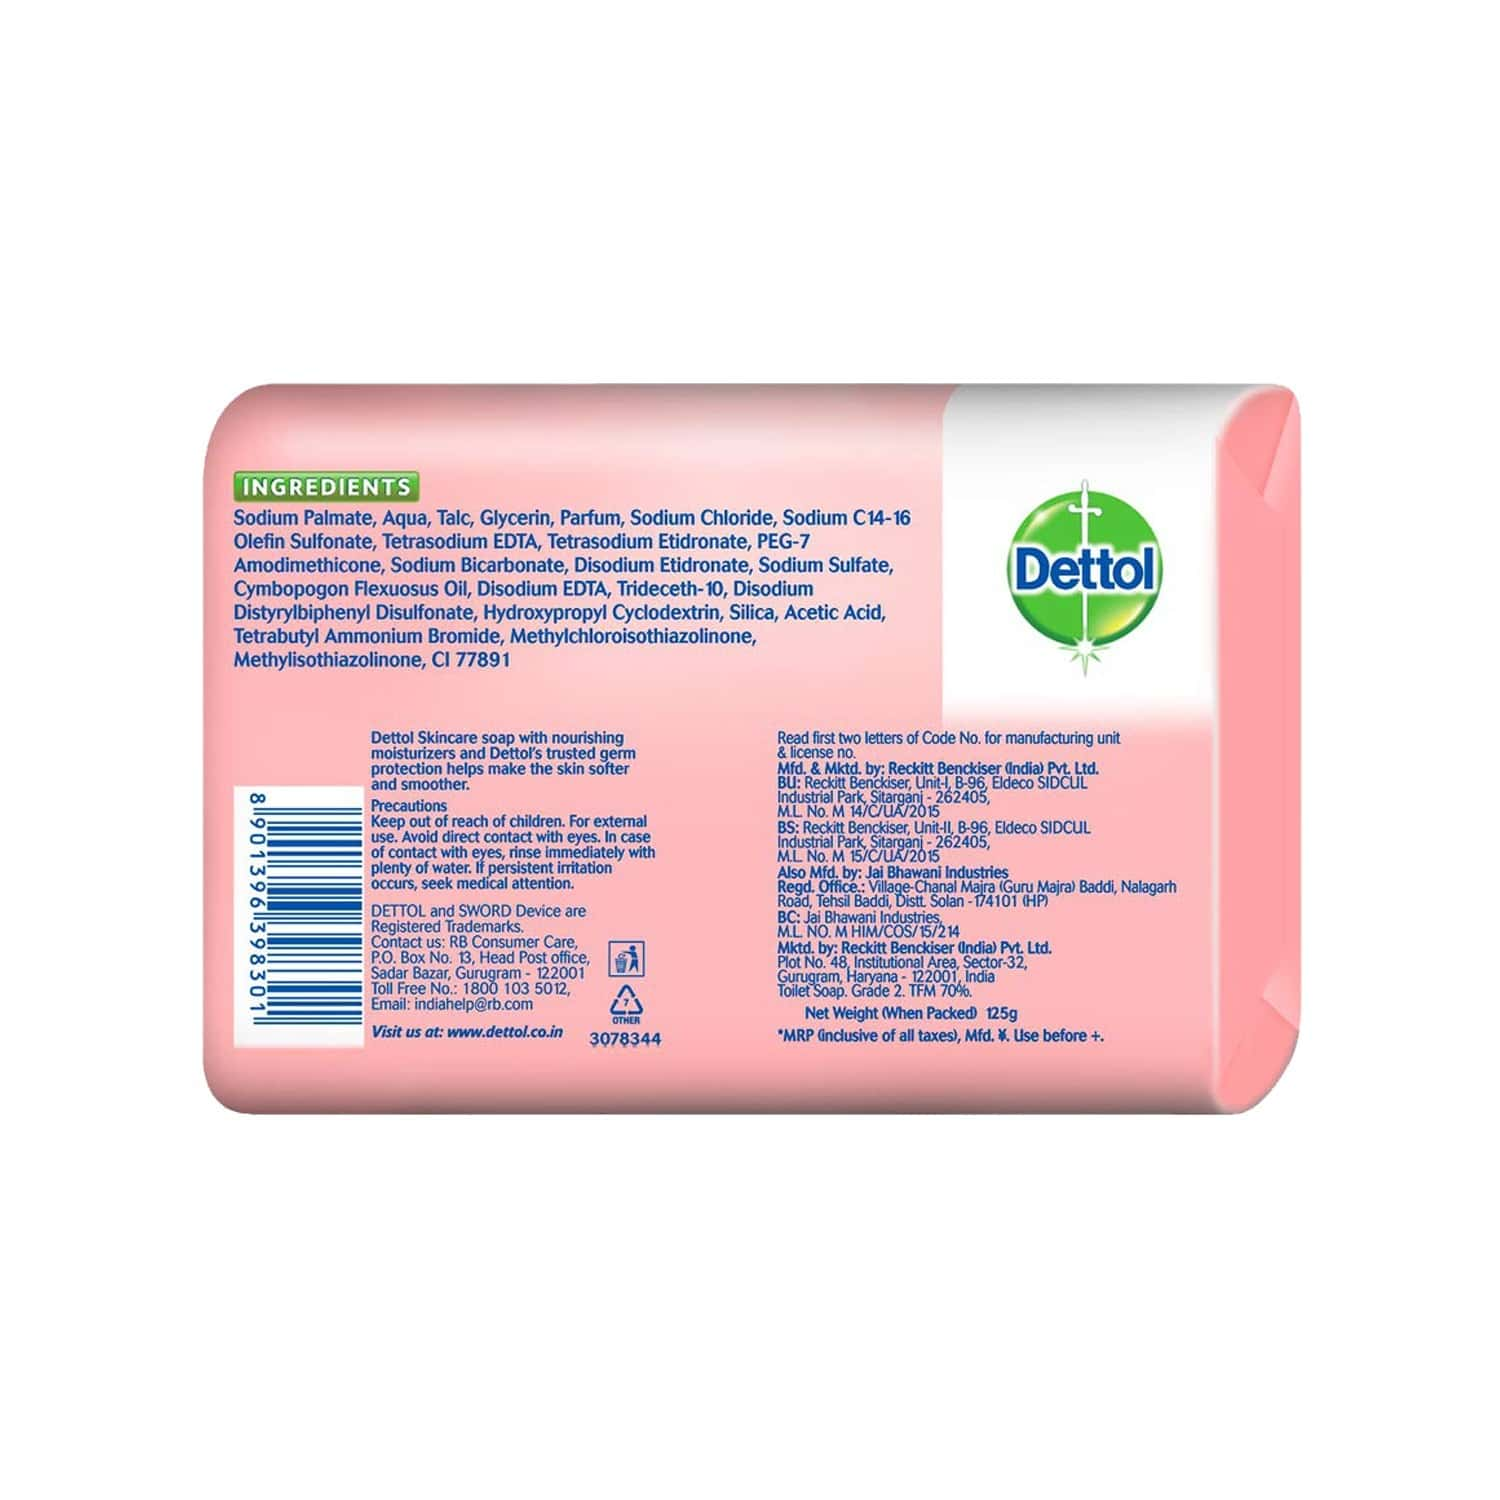 Dettol Skincare Germ Protection (pack Of 4) Soap Box Of 125 G